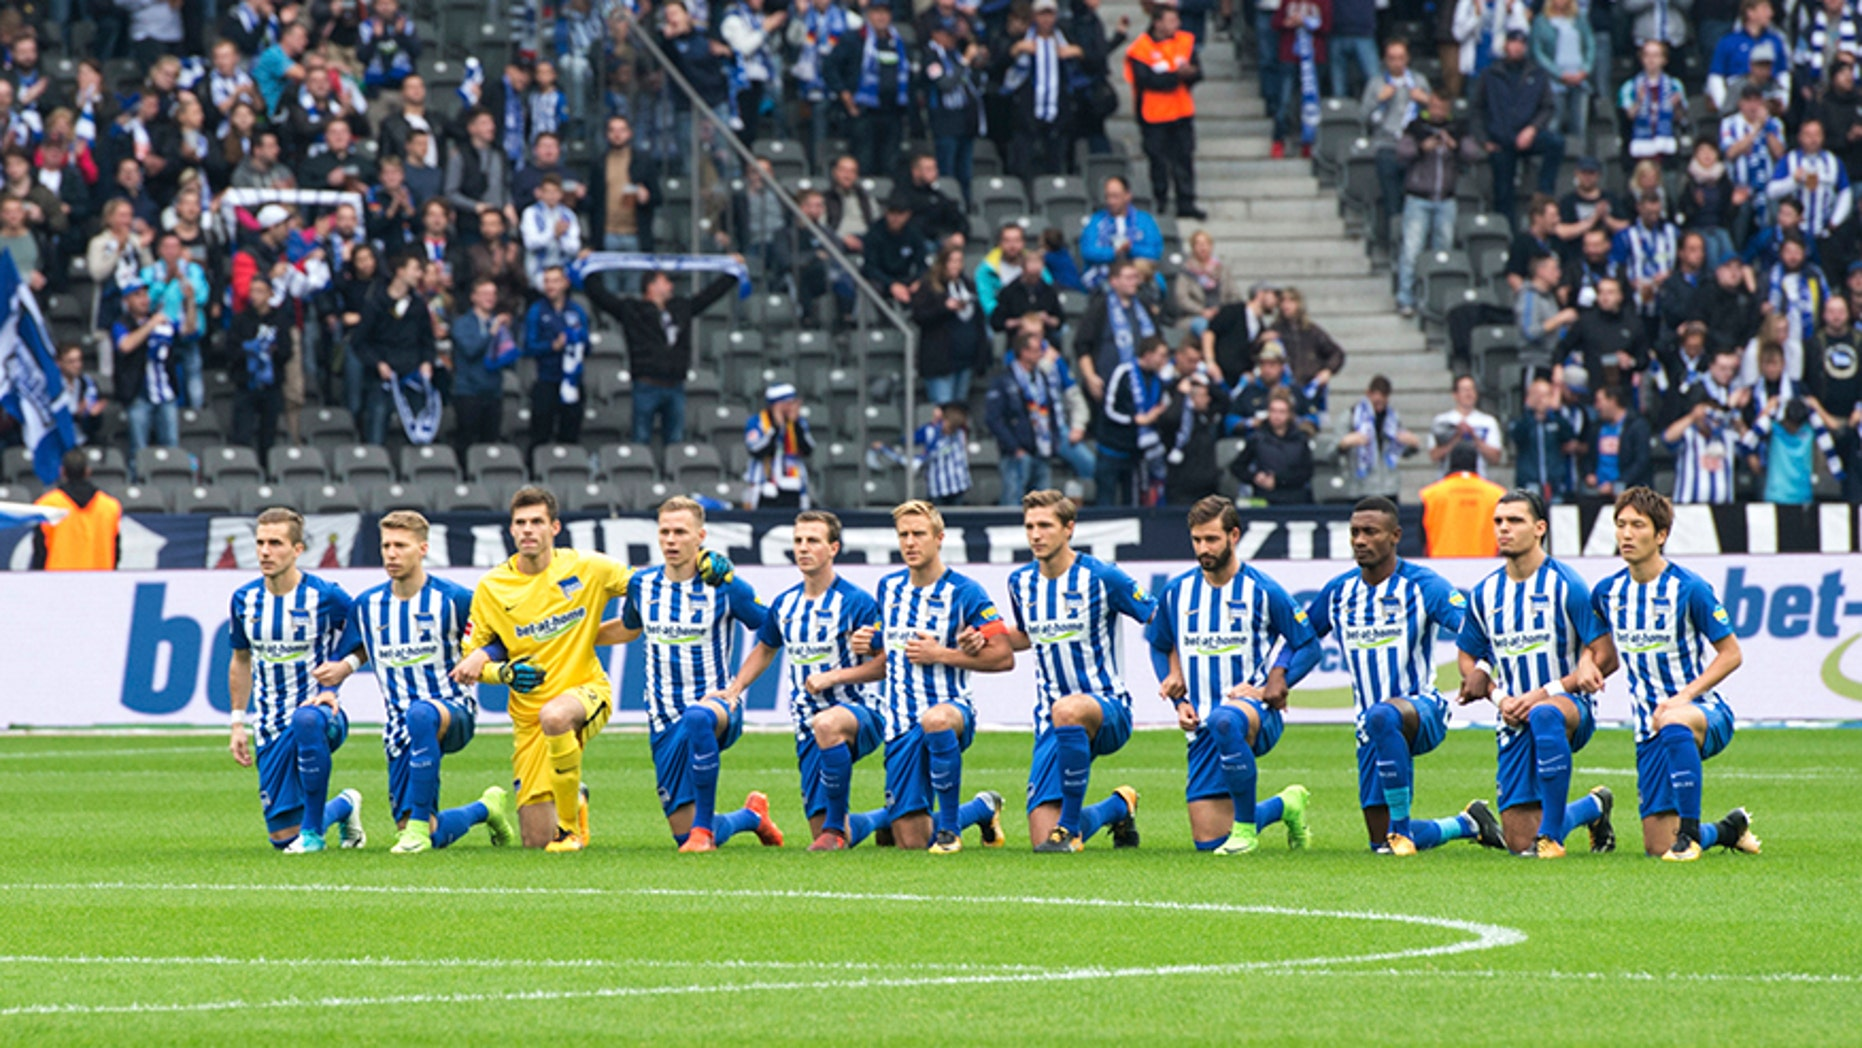 Hertha Berlin, a German soccer club, kneeled before their match Saturday in a show of solidary with NFL players.